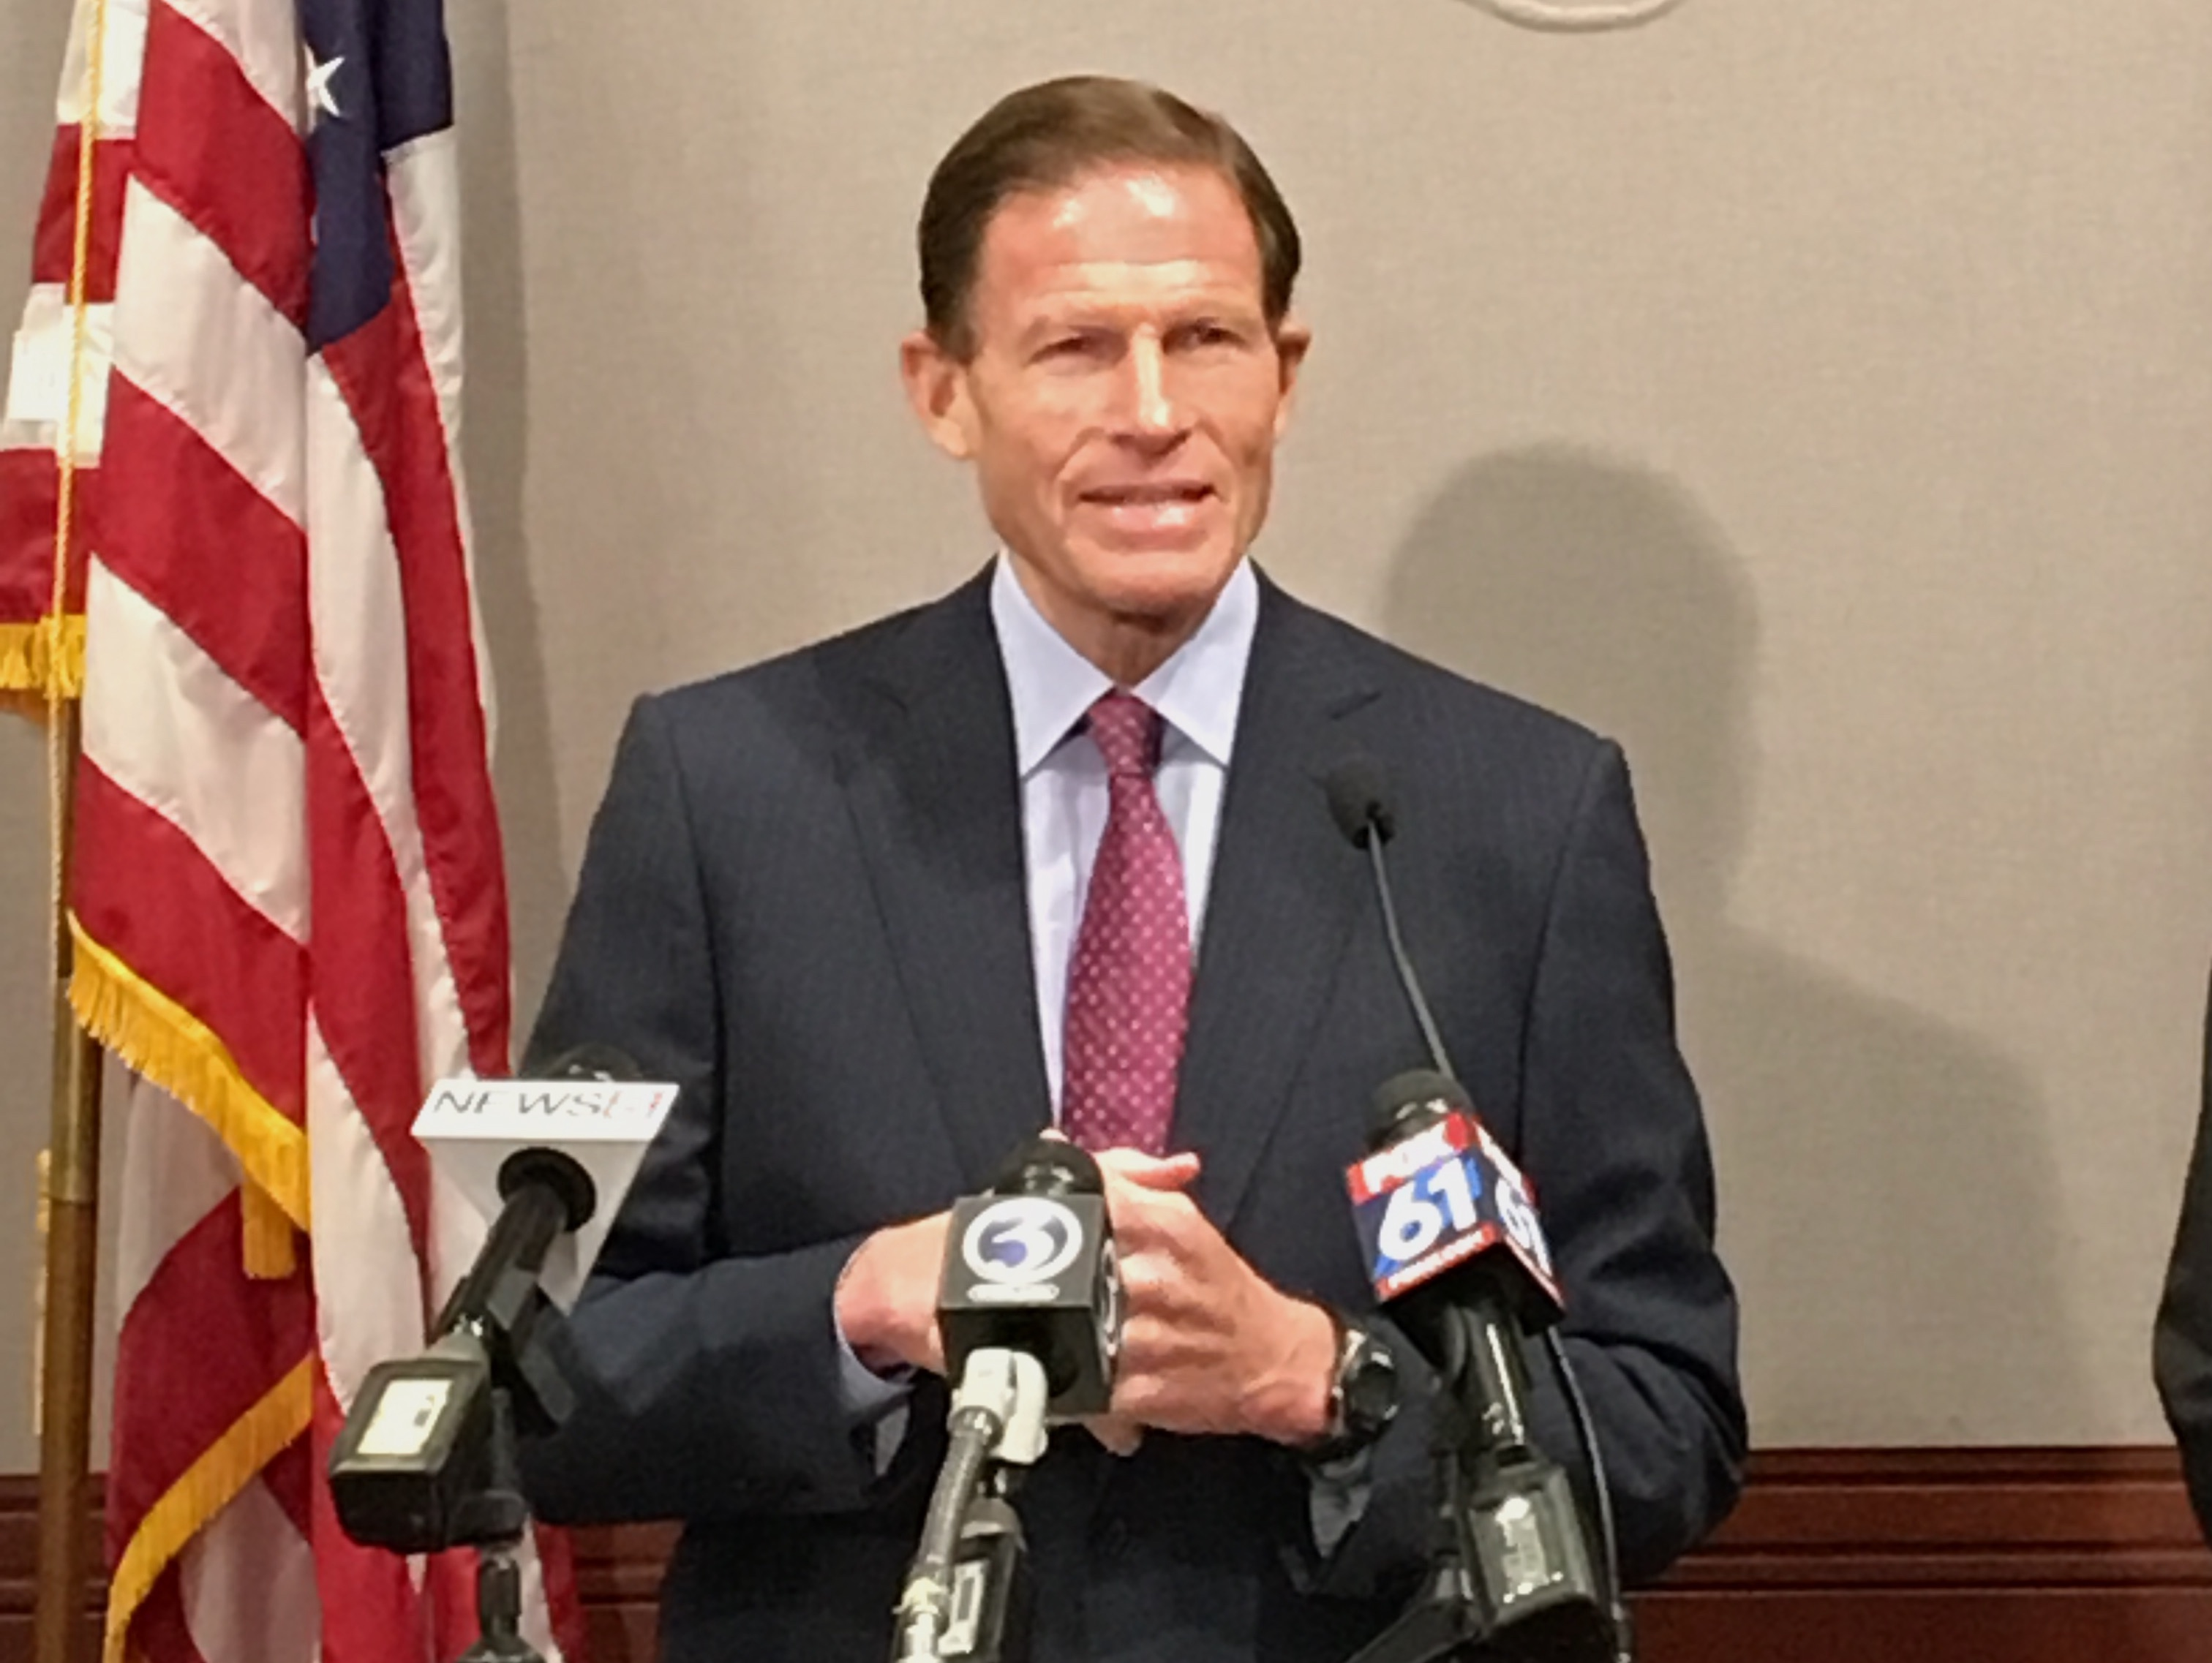 Lawsuit by Blumenthal, Democrats would seek Trump's tax returns